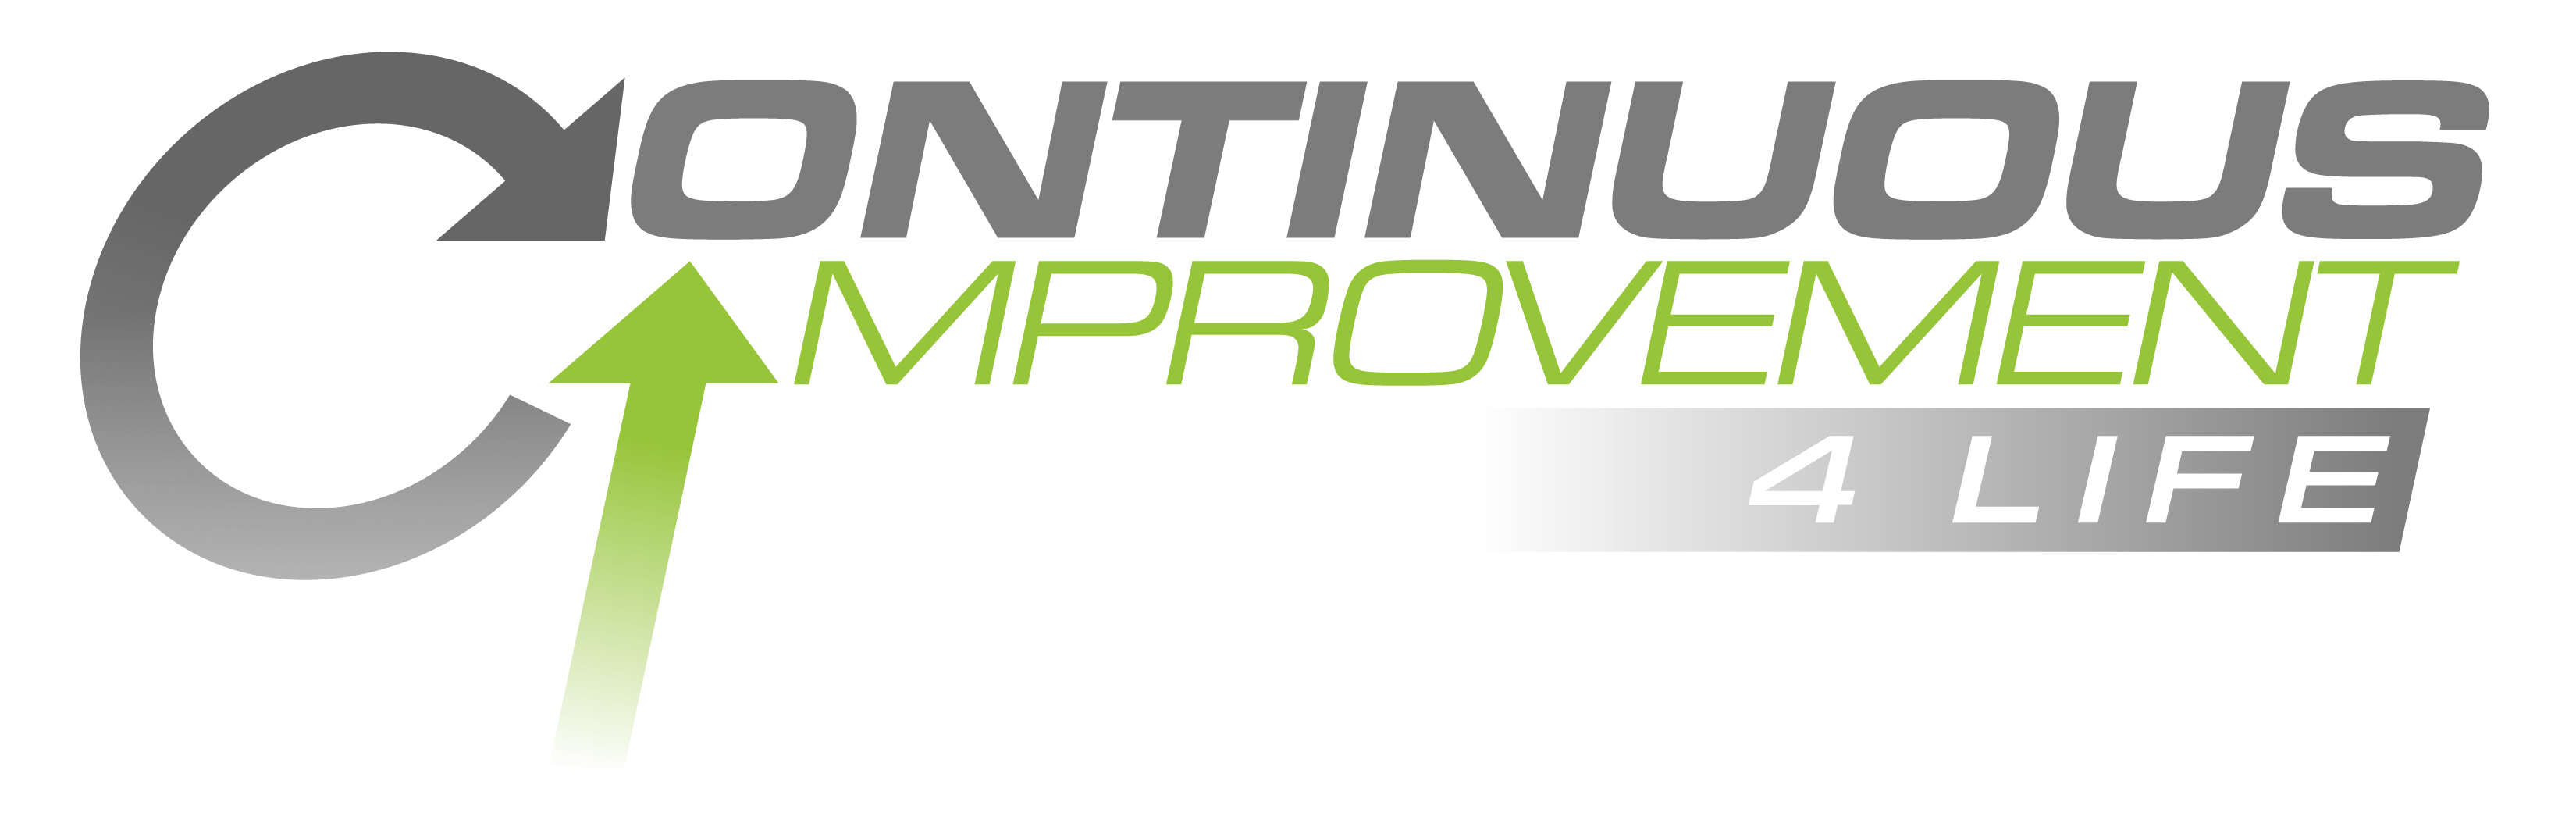 Continuous Improvements 4 Life Logo